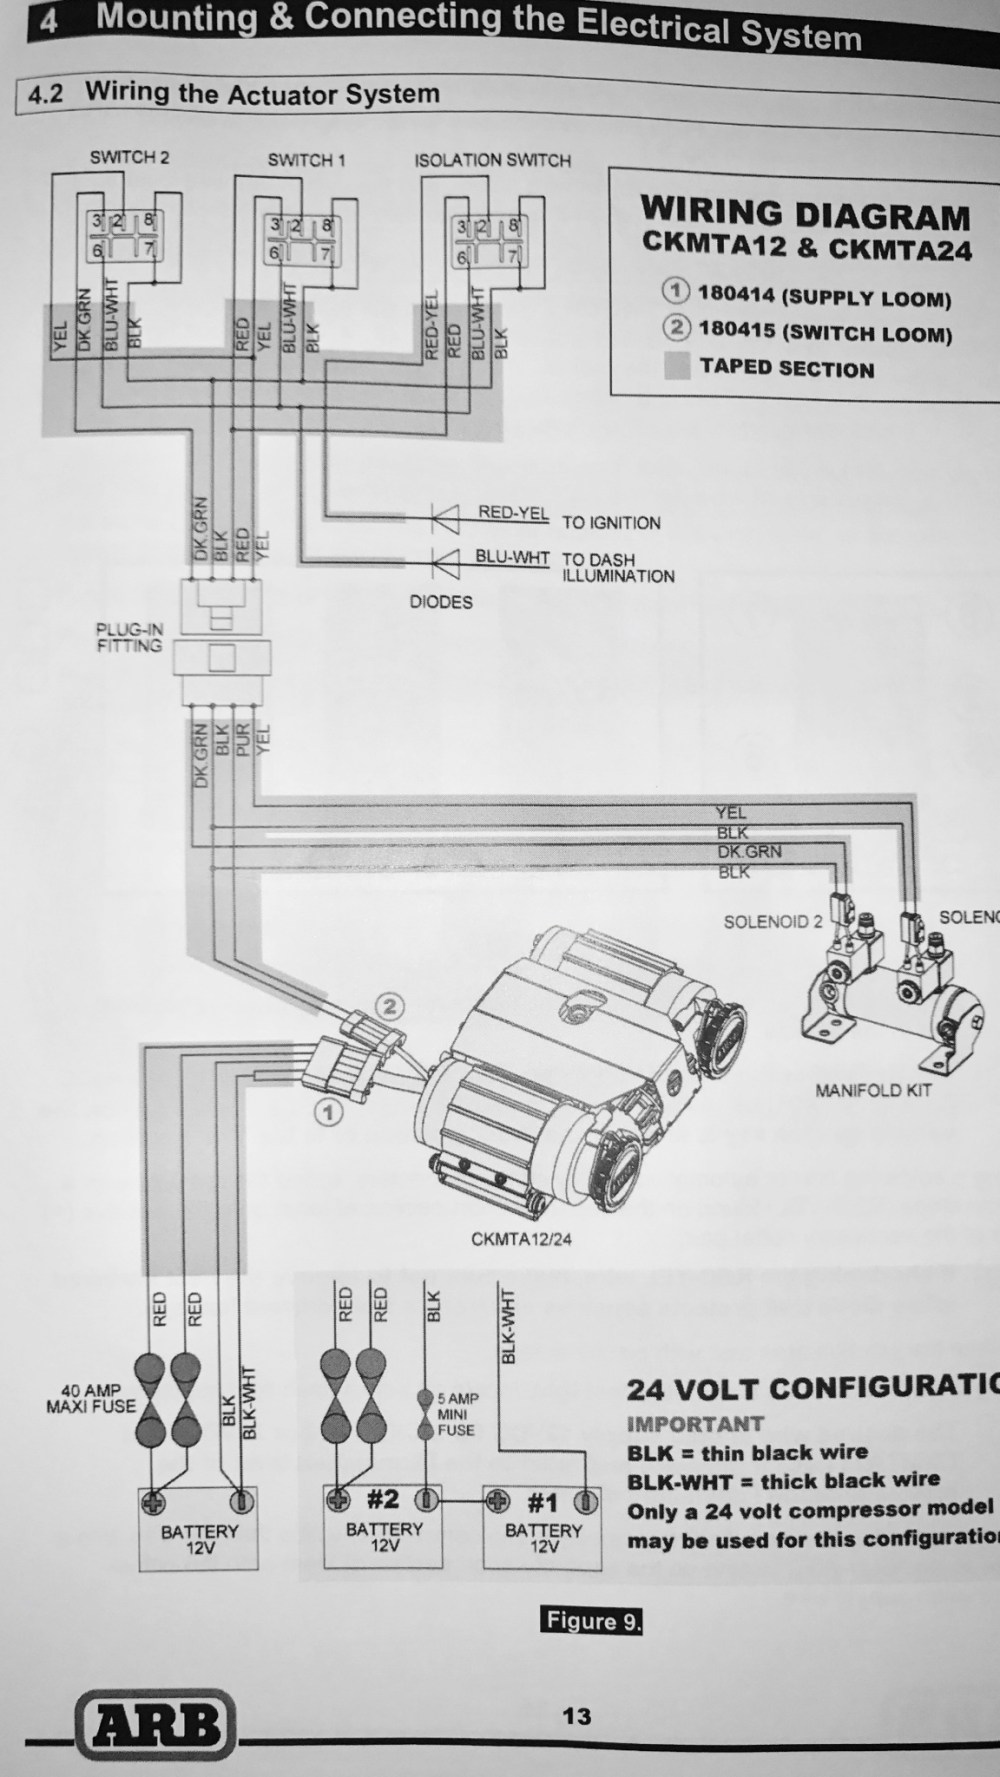 medium resolution of this image has been resized click this bar to view the full image installation help arb twin compressor jeep